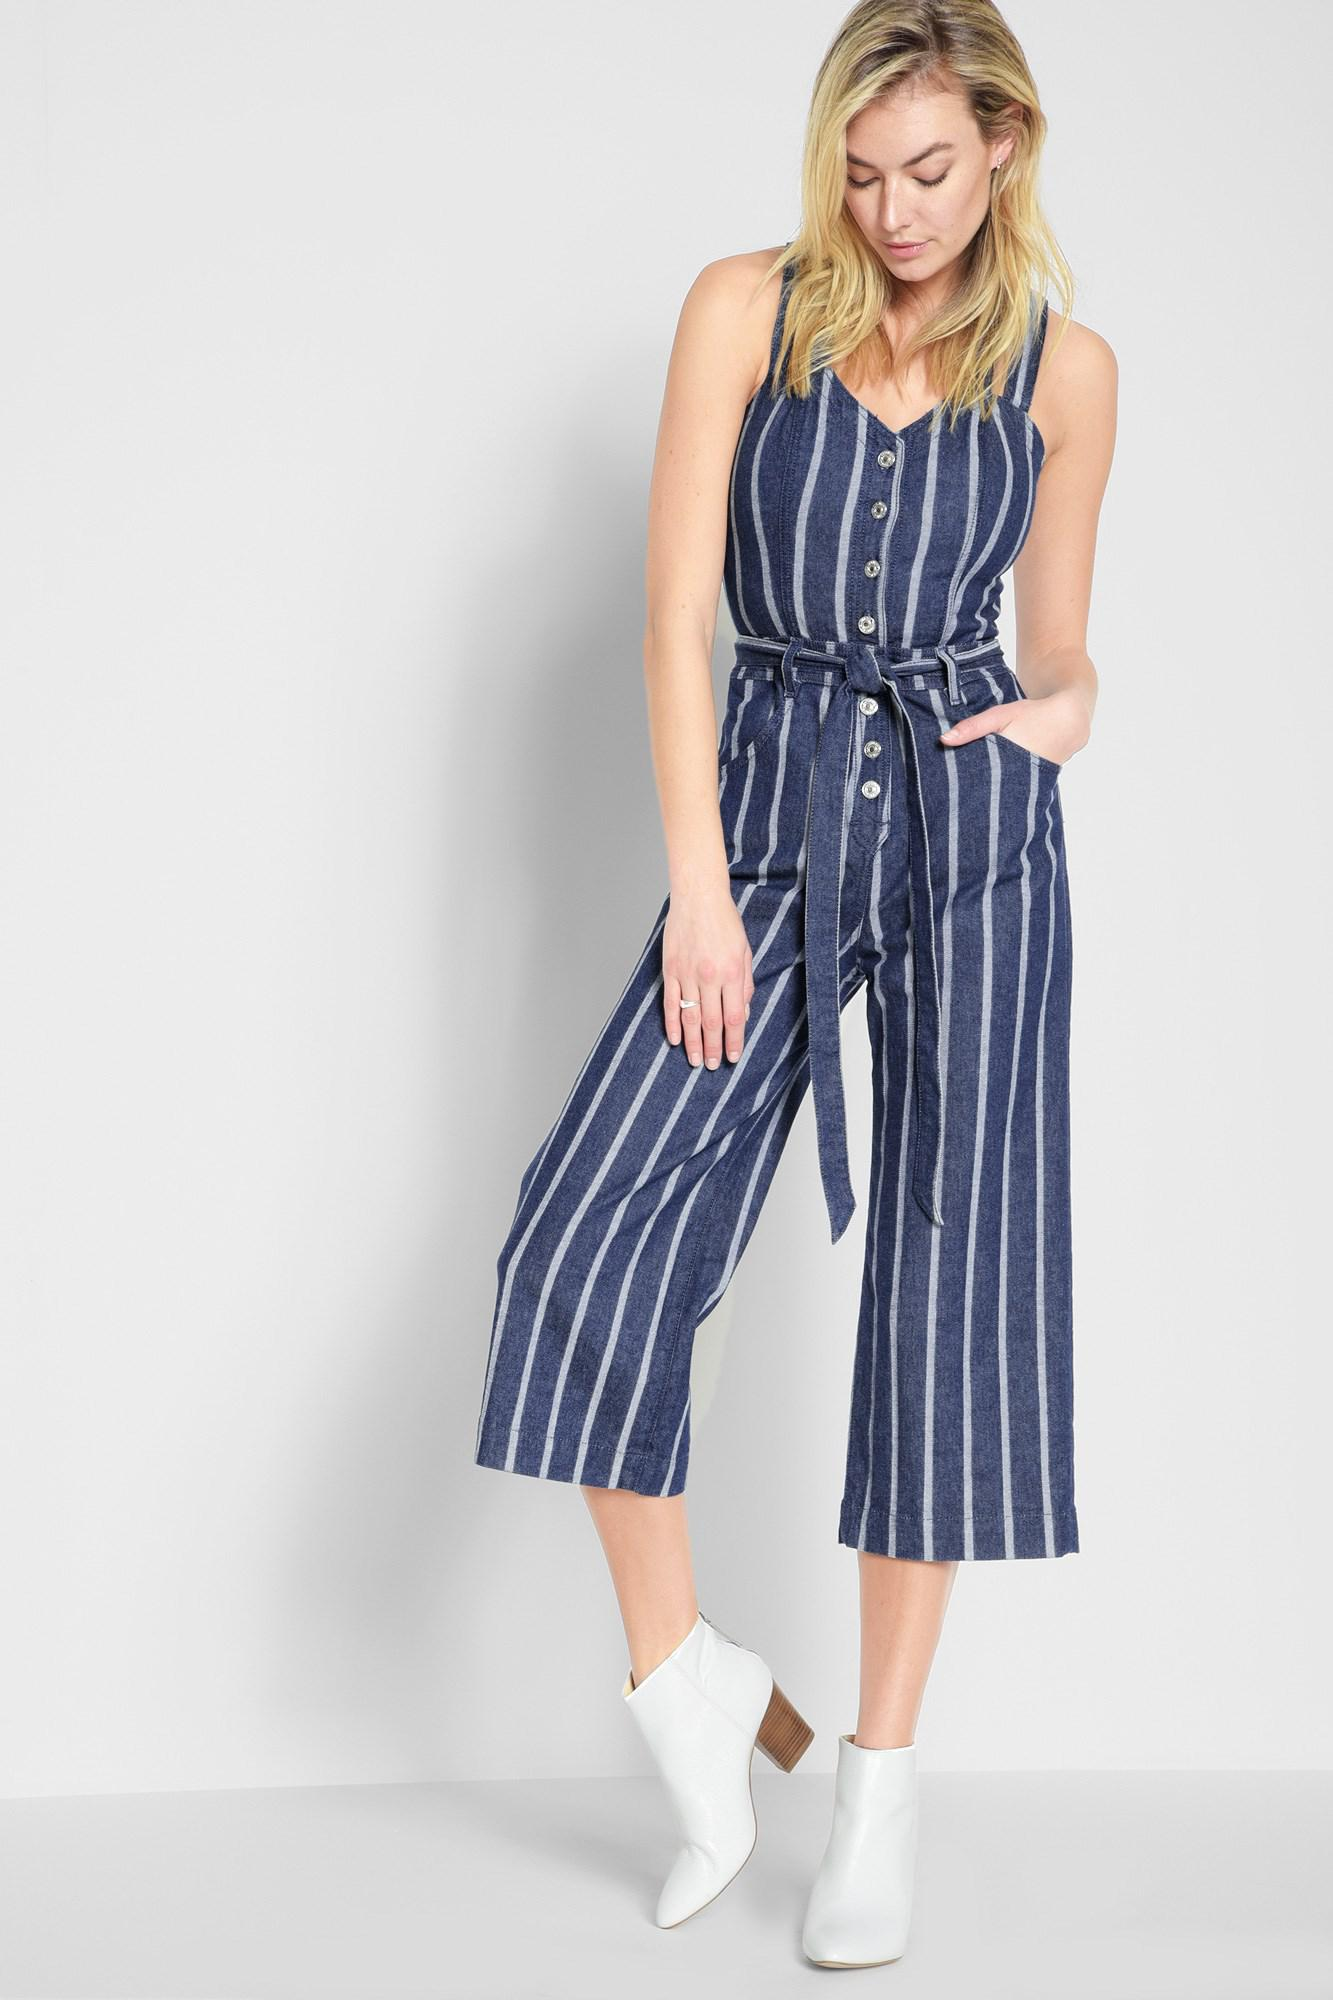 Lyst 7 For All Mankind Button Front Playsuit In Seaside Stripe In Blue